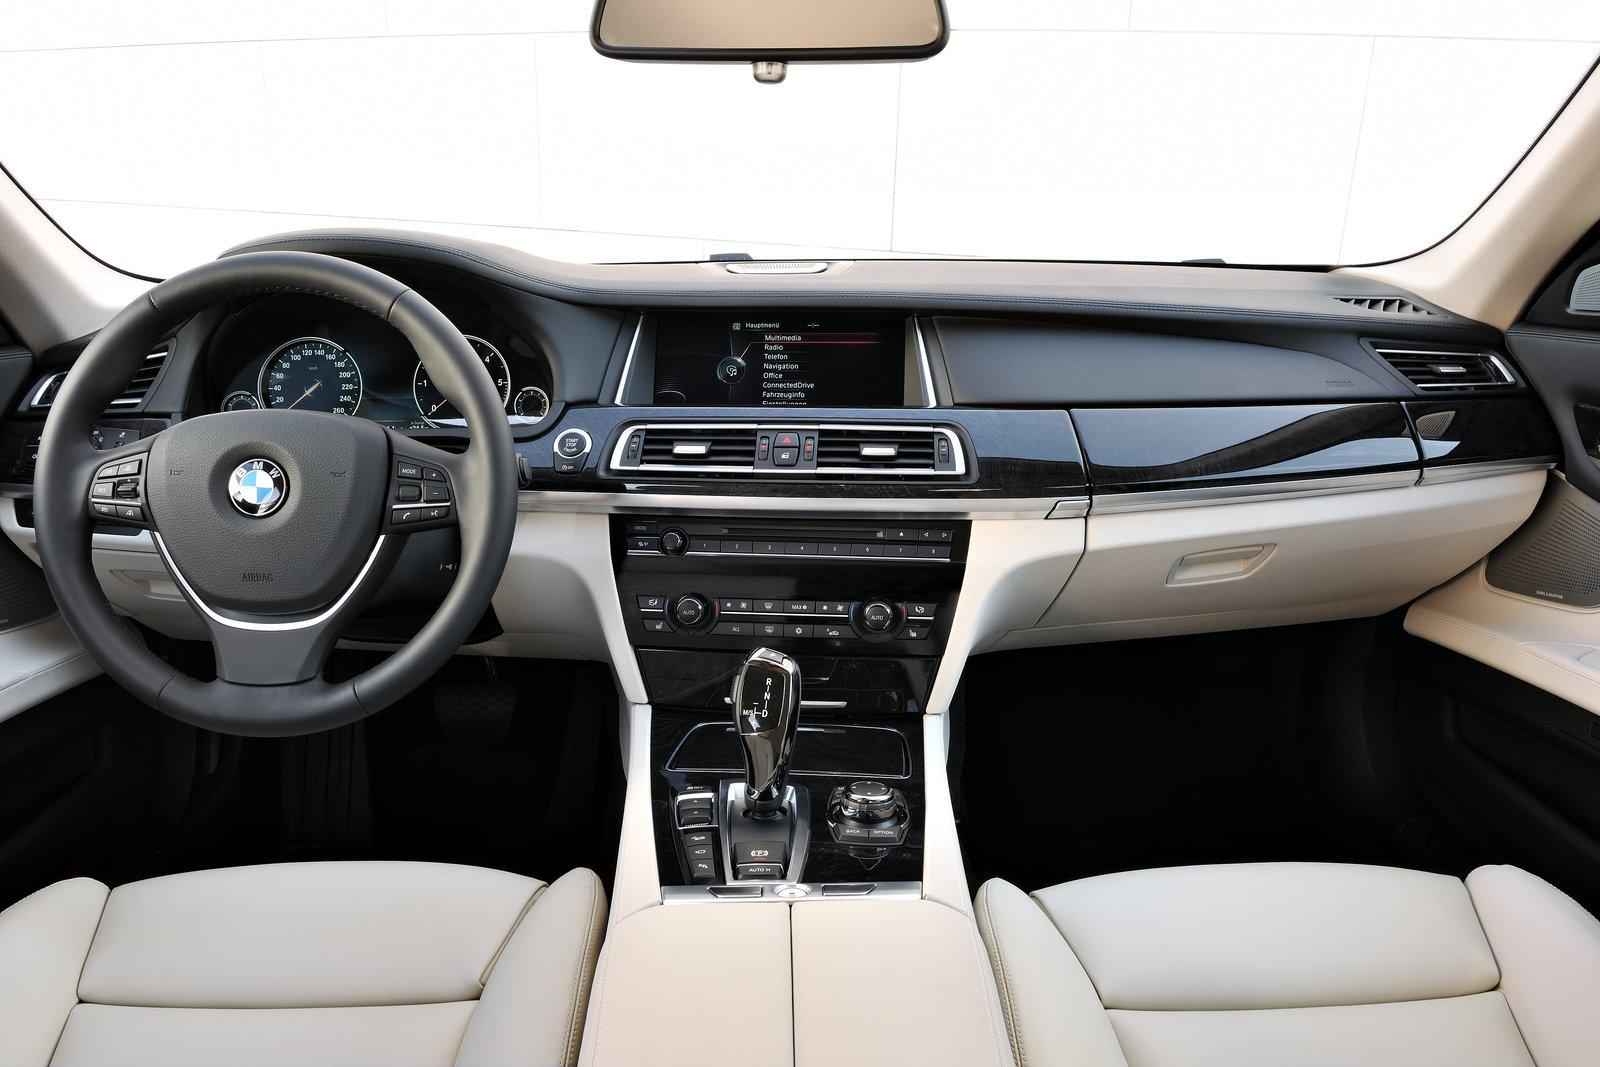 hight resolution of 2015 bmw x8 sports activity cabriolet interior view